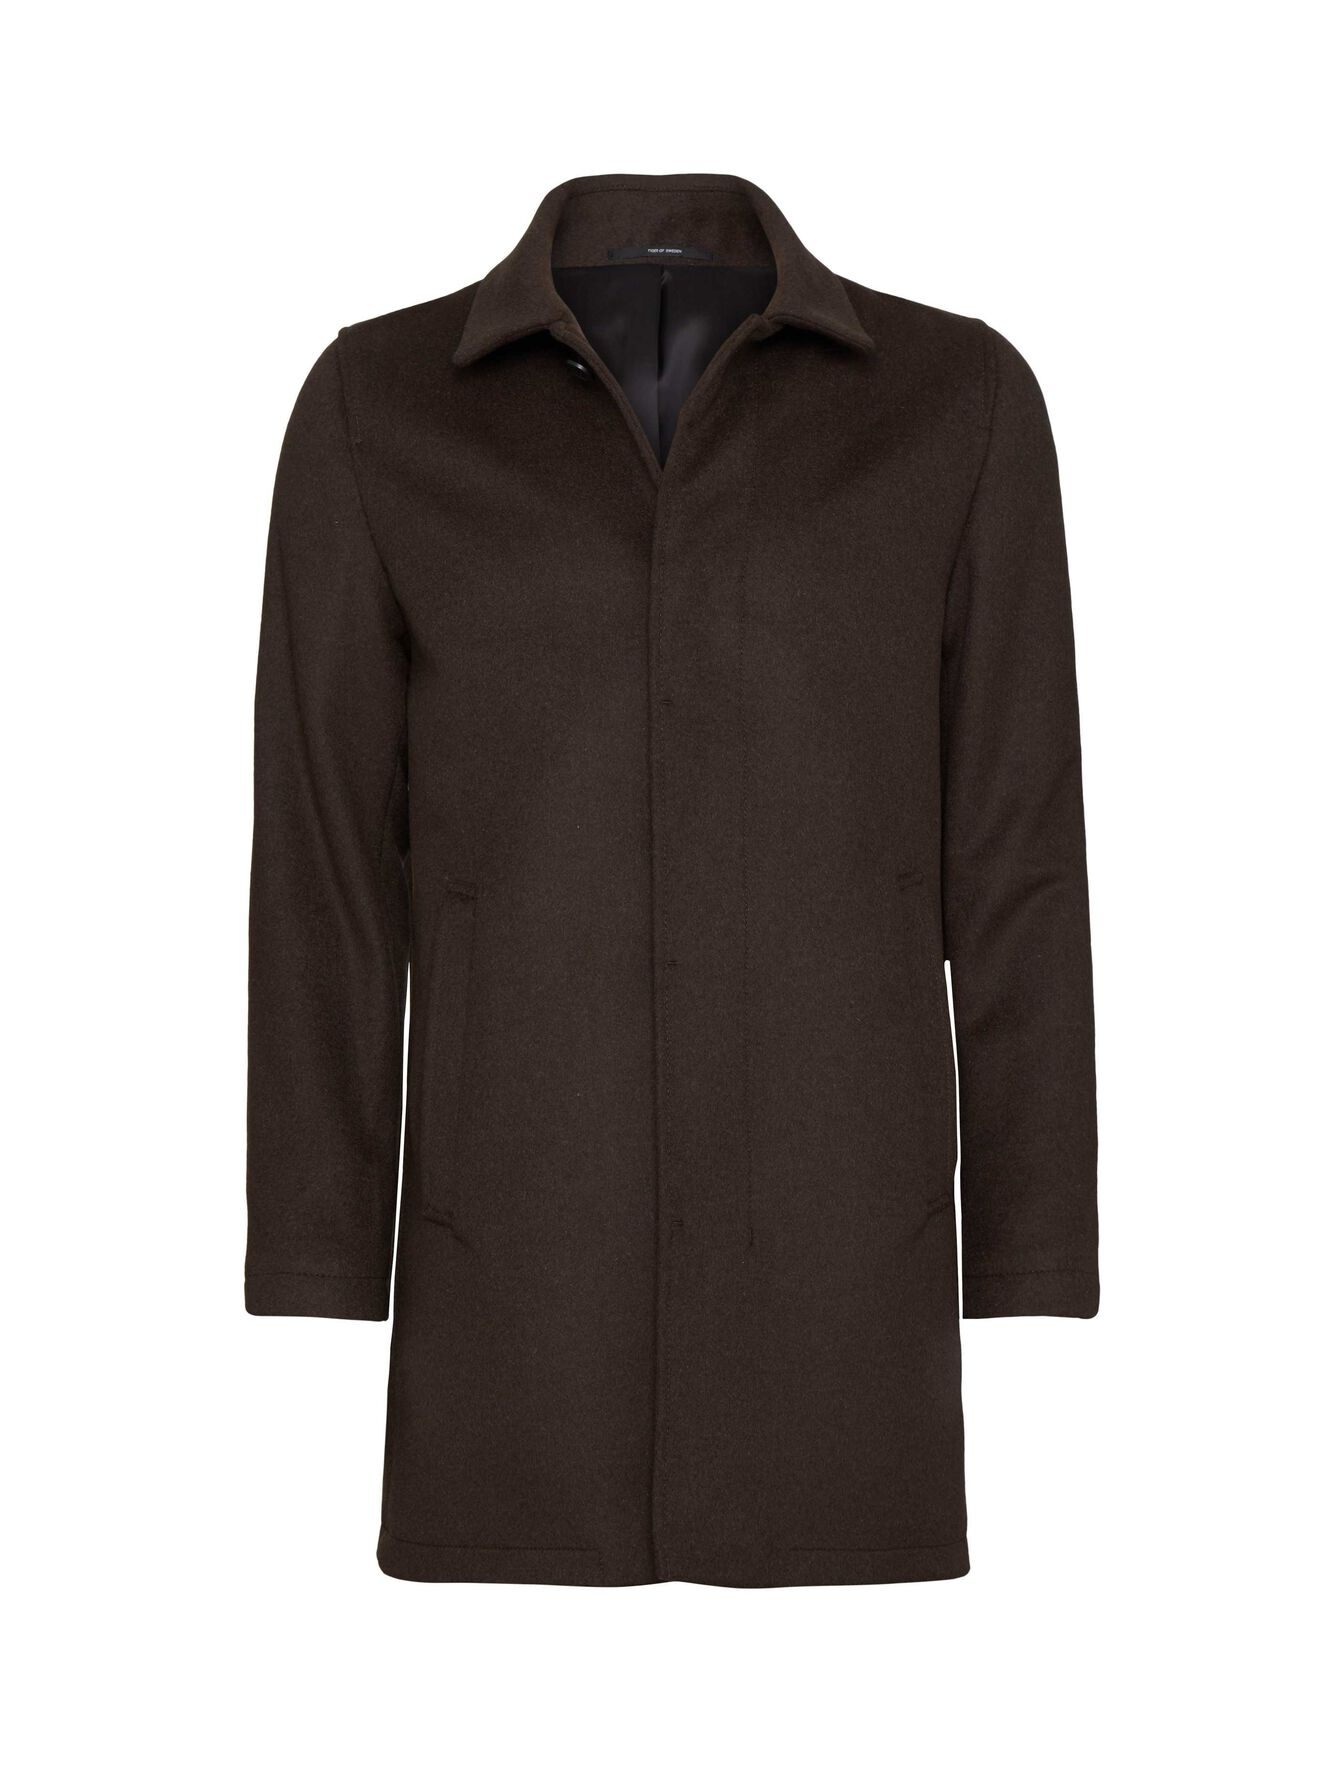 Bruiser15 Coat in Brown from Tiger of Sweden